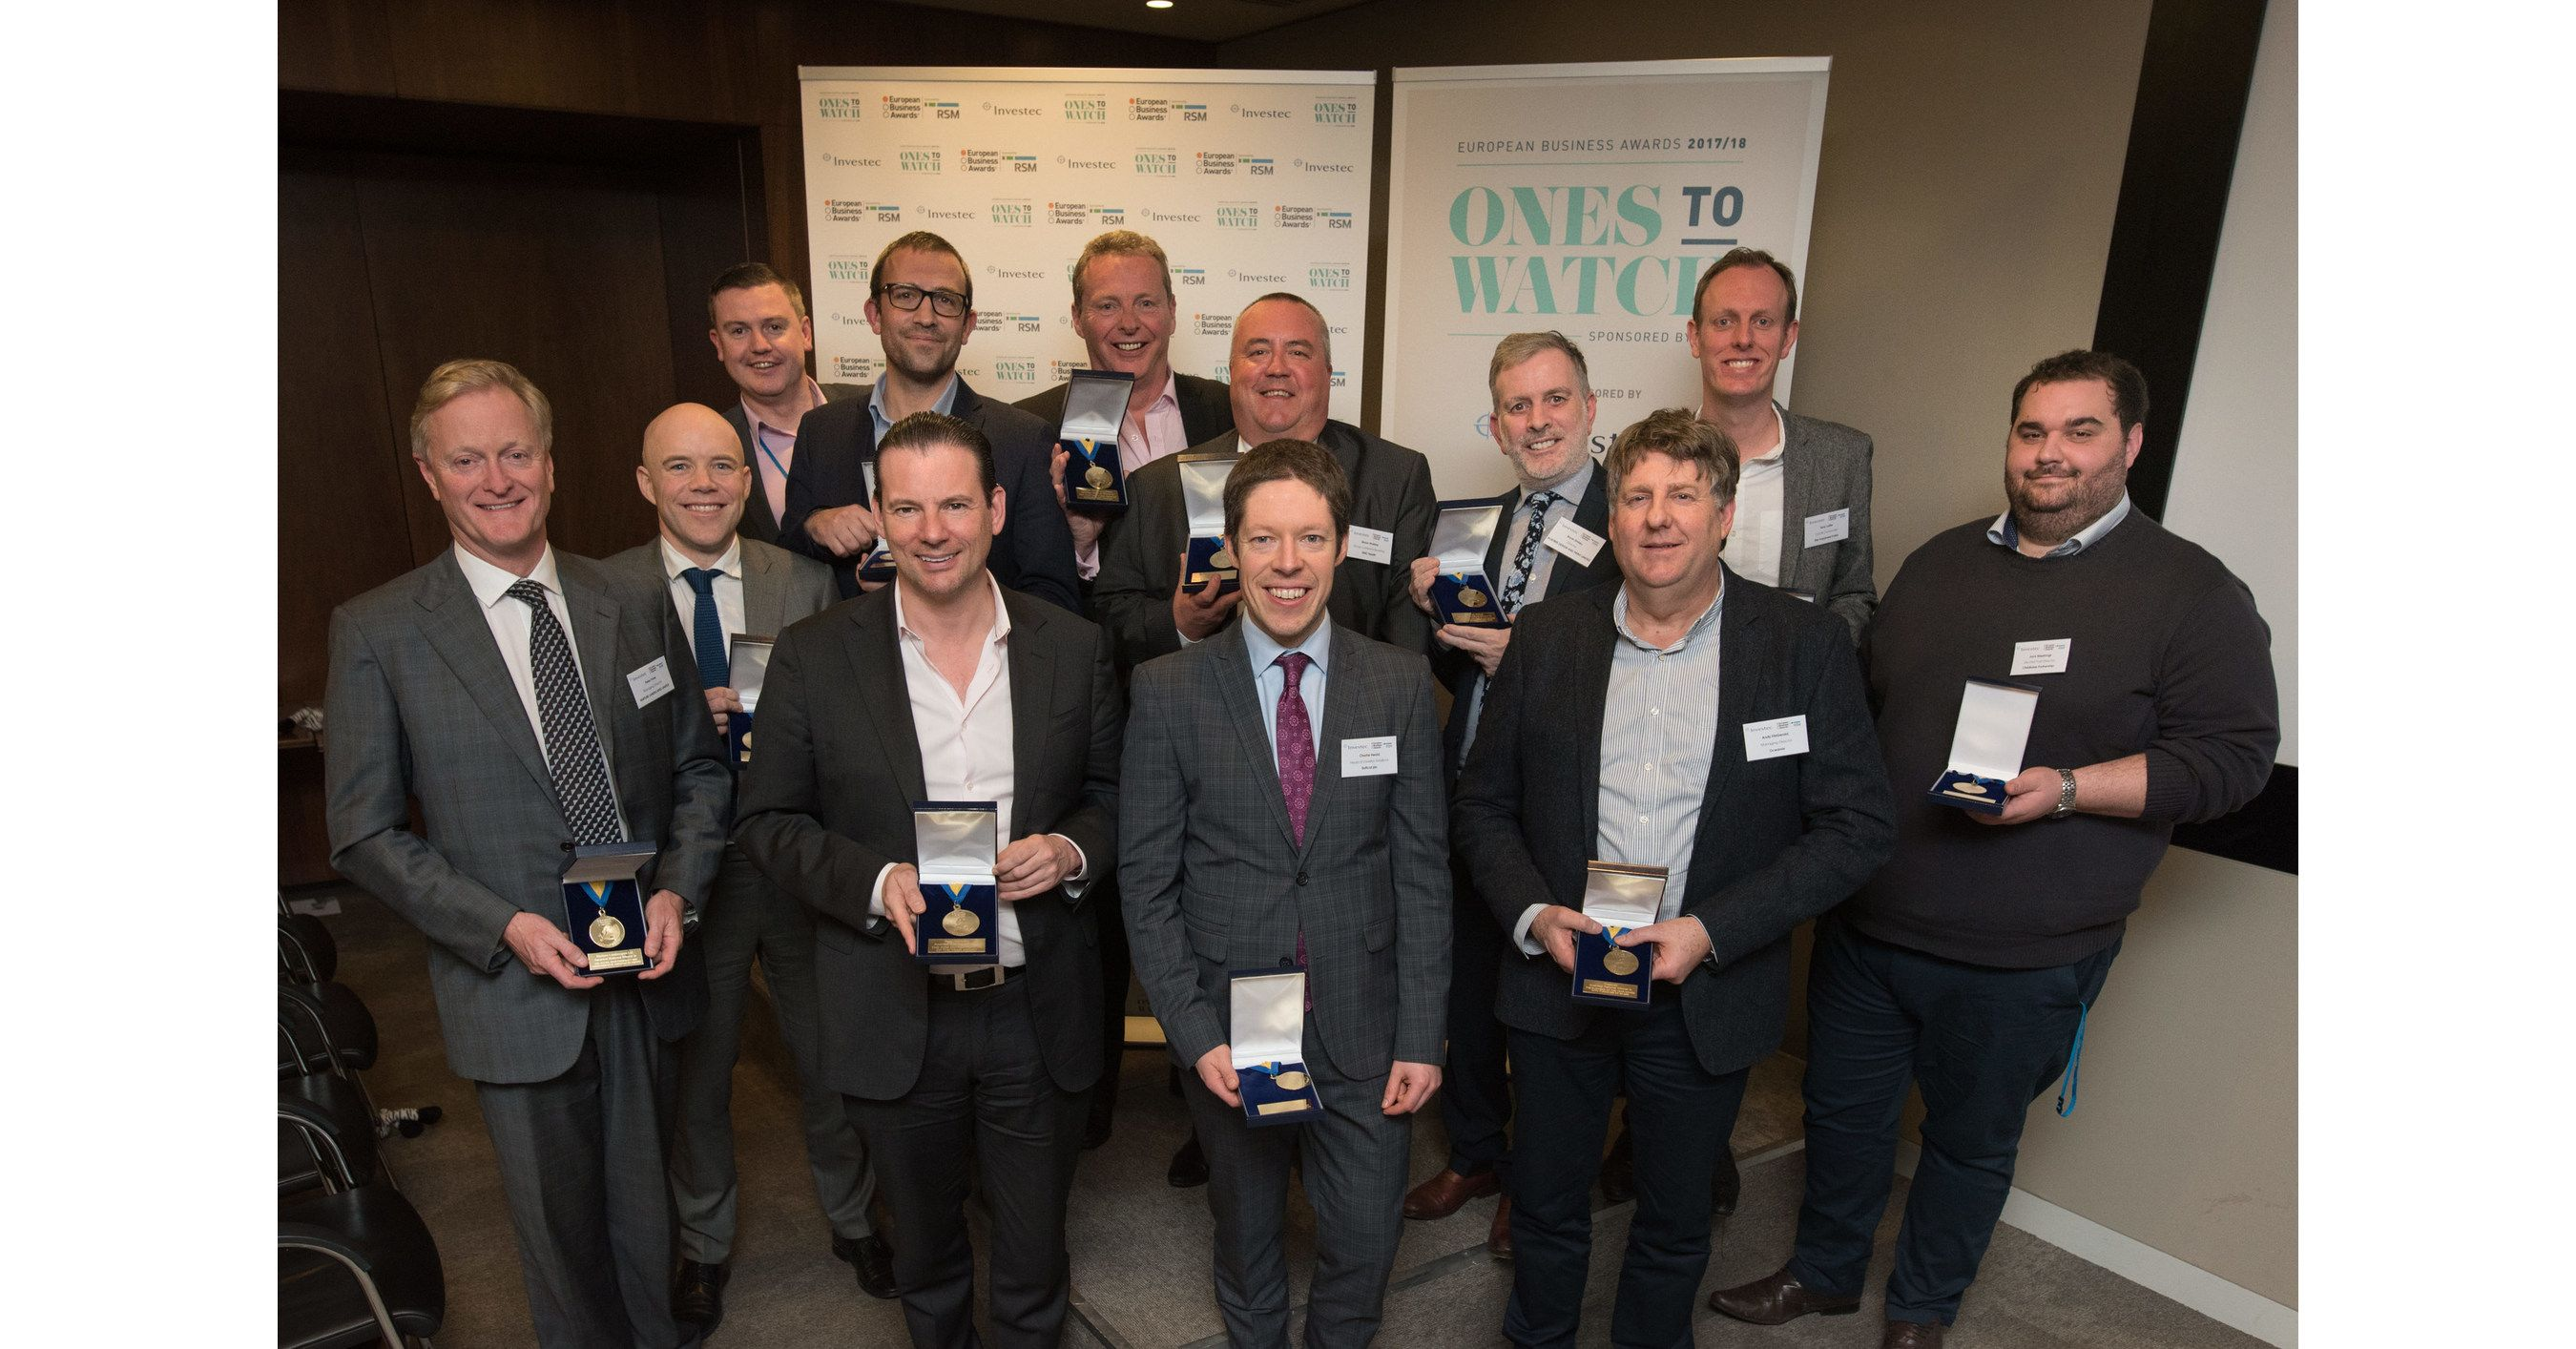 National Winners' From the United Kingdom Named at Exclusive Event